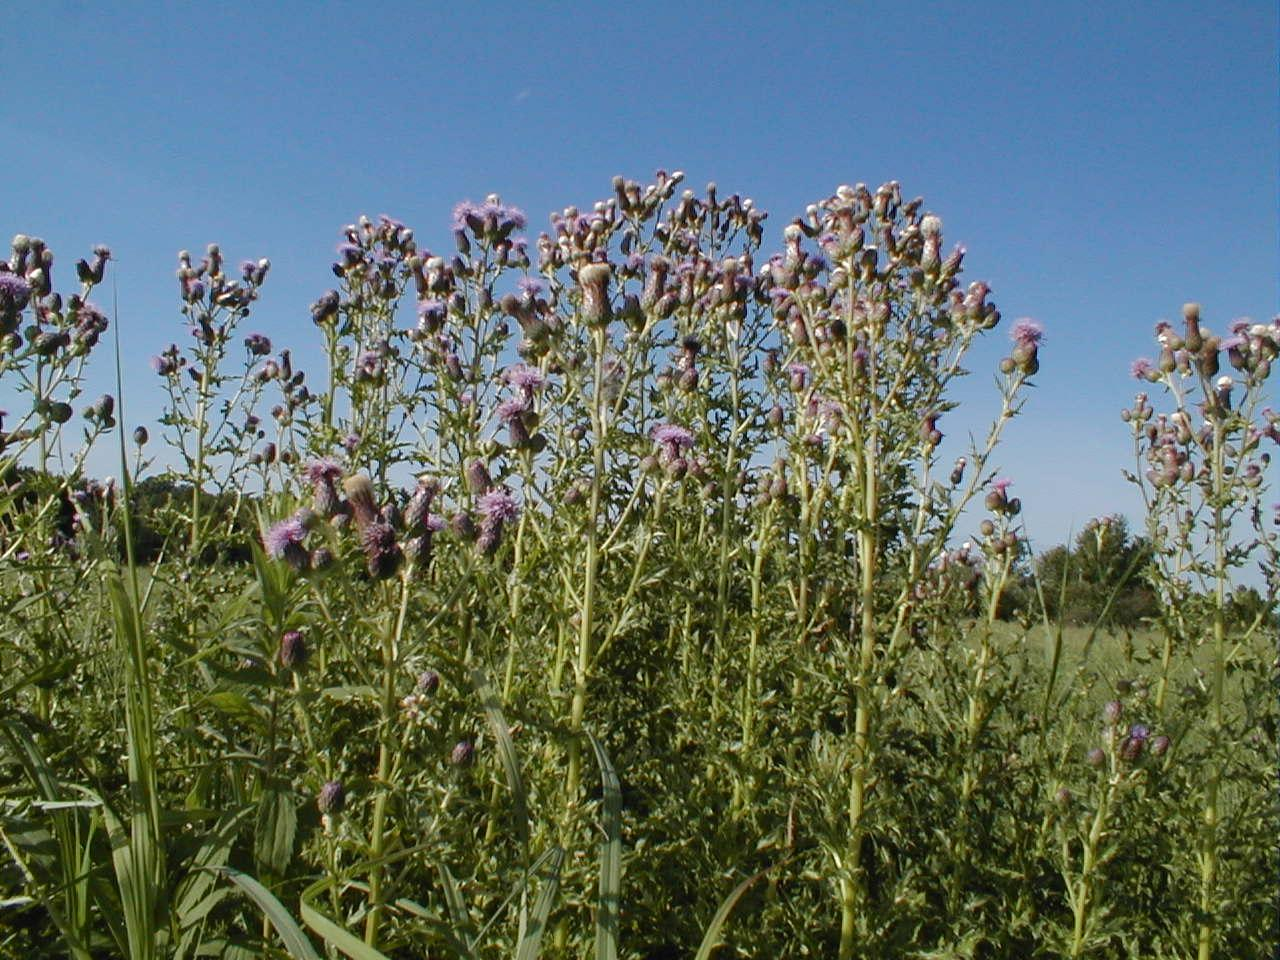 http://www.natronacountyweeds.com/wp-content/gallery/canada-thistle/ct1.jpg